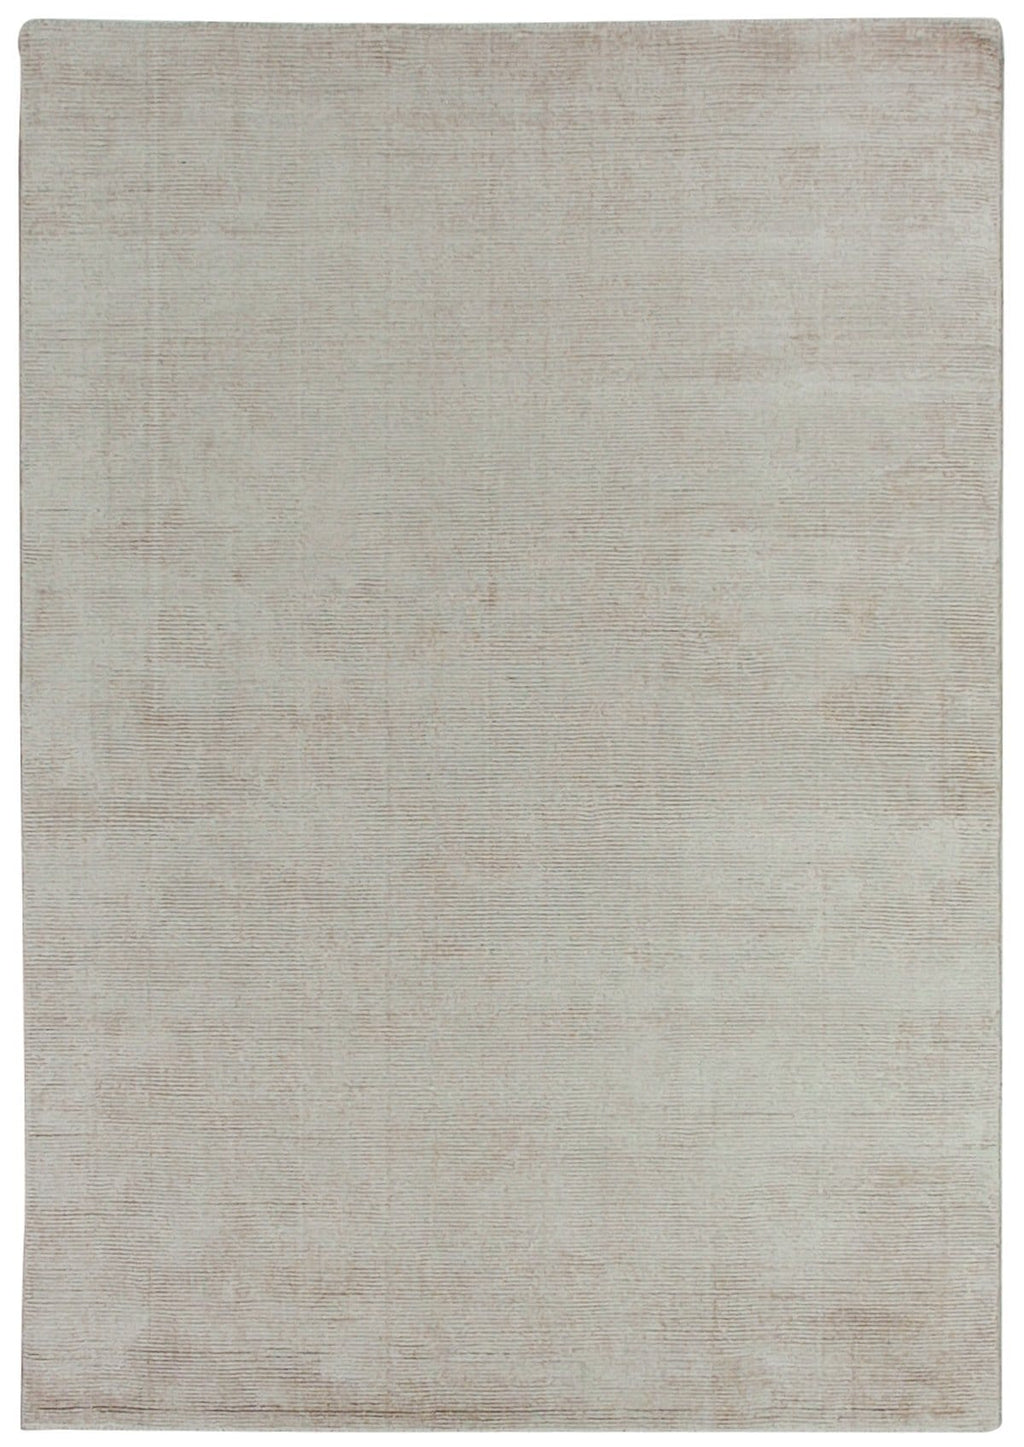 Itahara Beige Distressed Wool Blend Rug